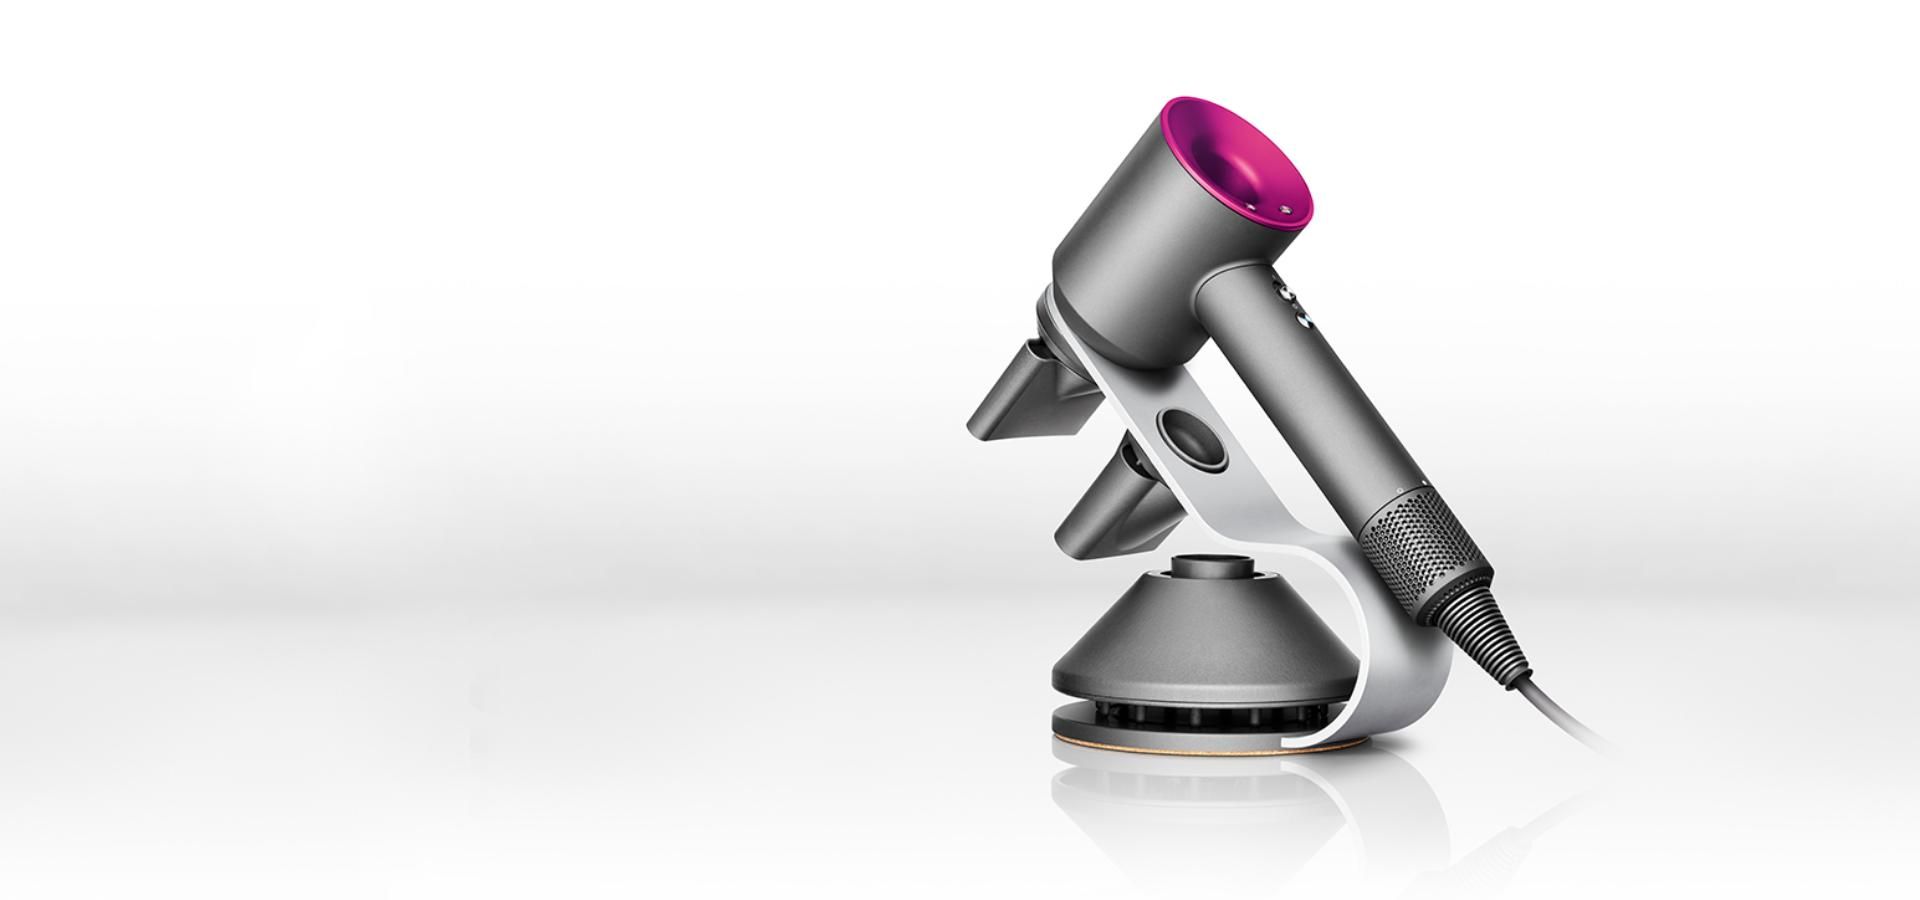 Dyson Supersonic™ stand